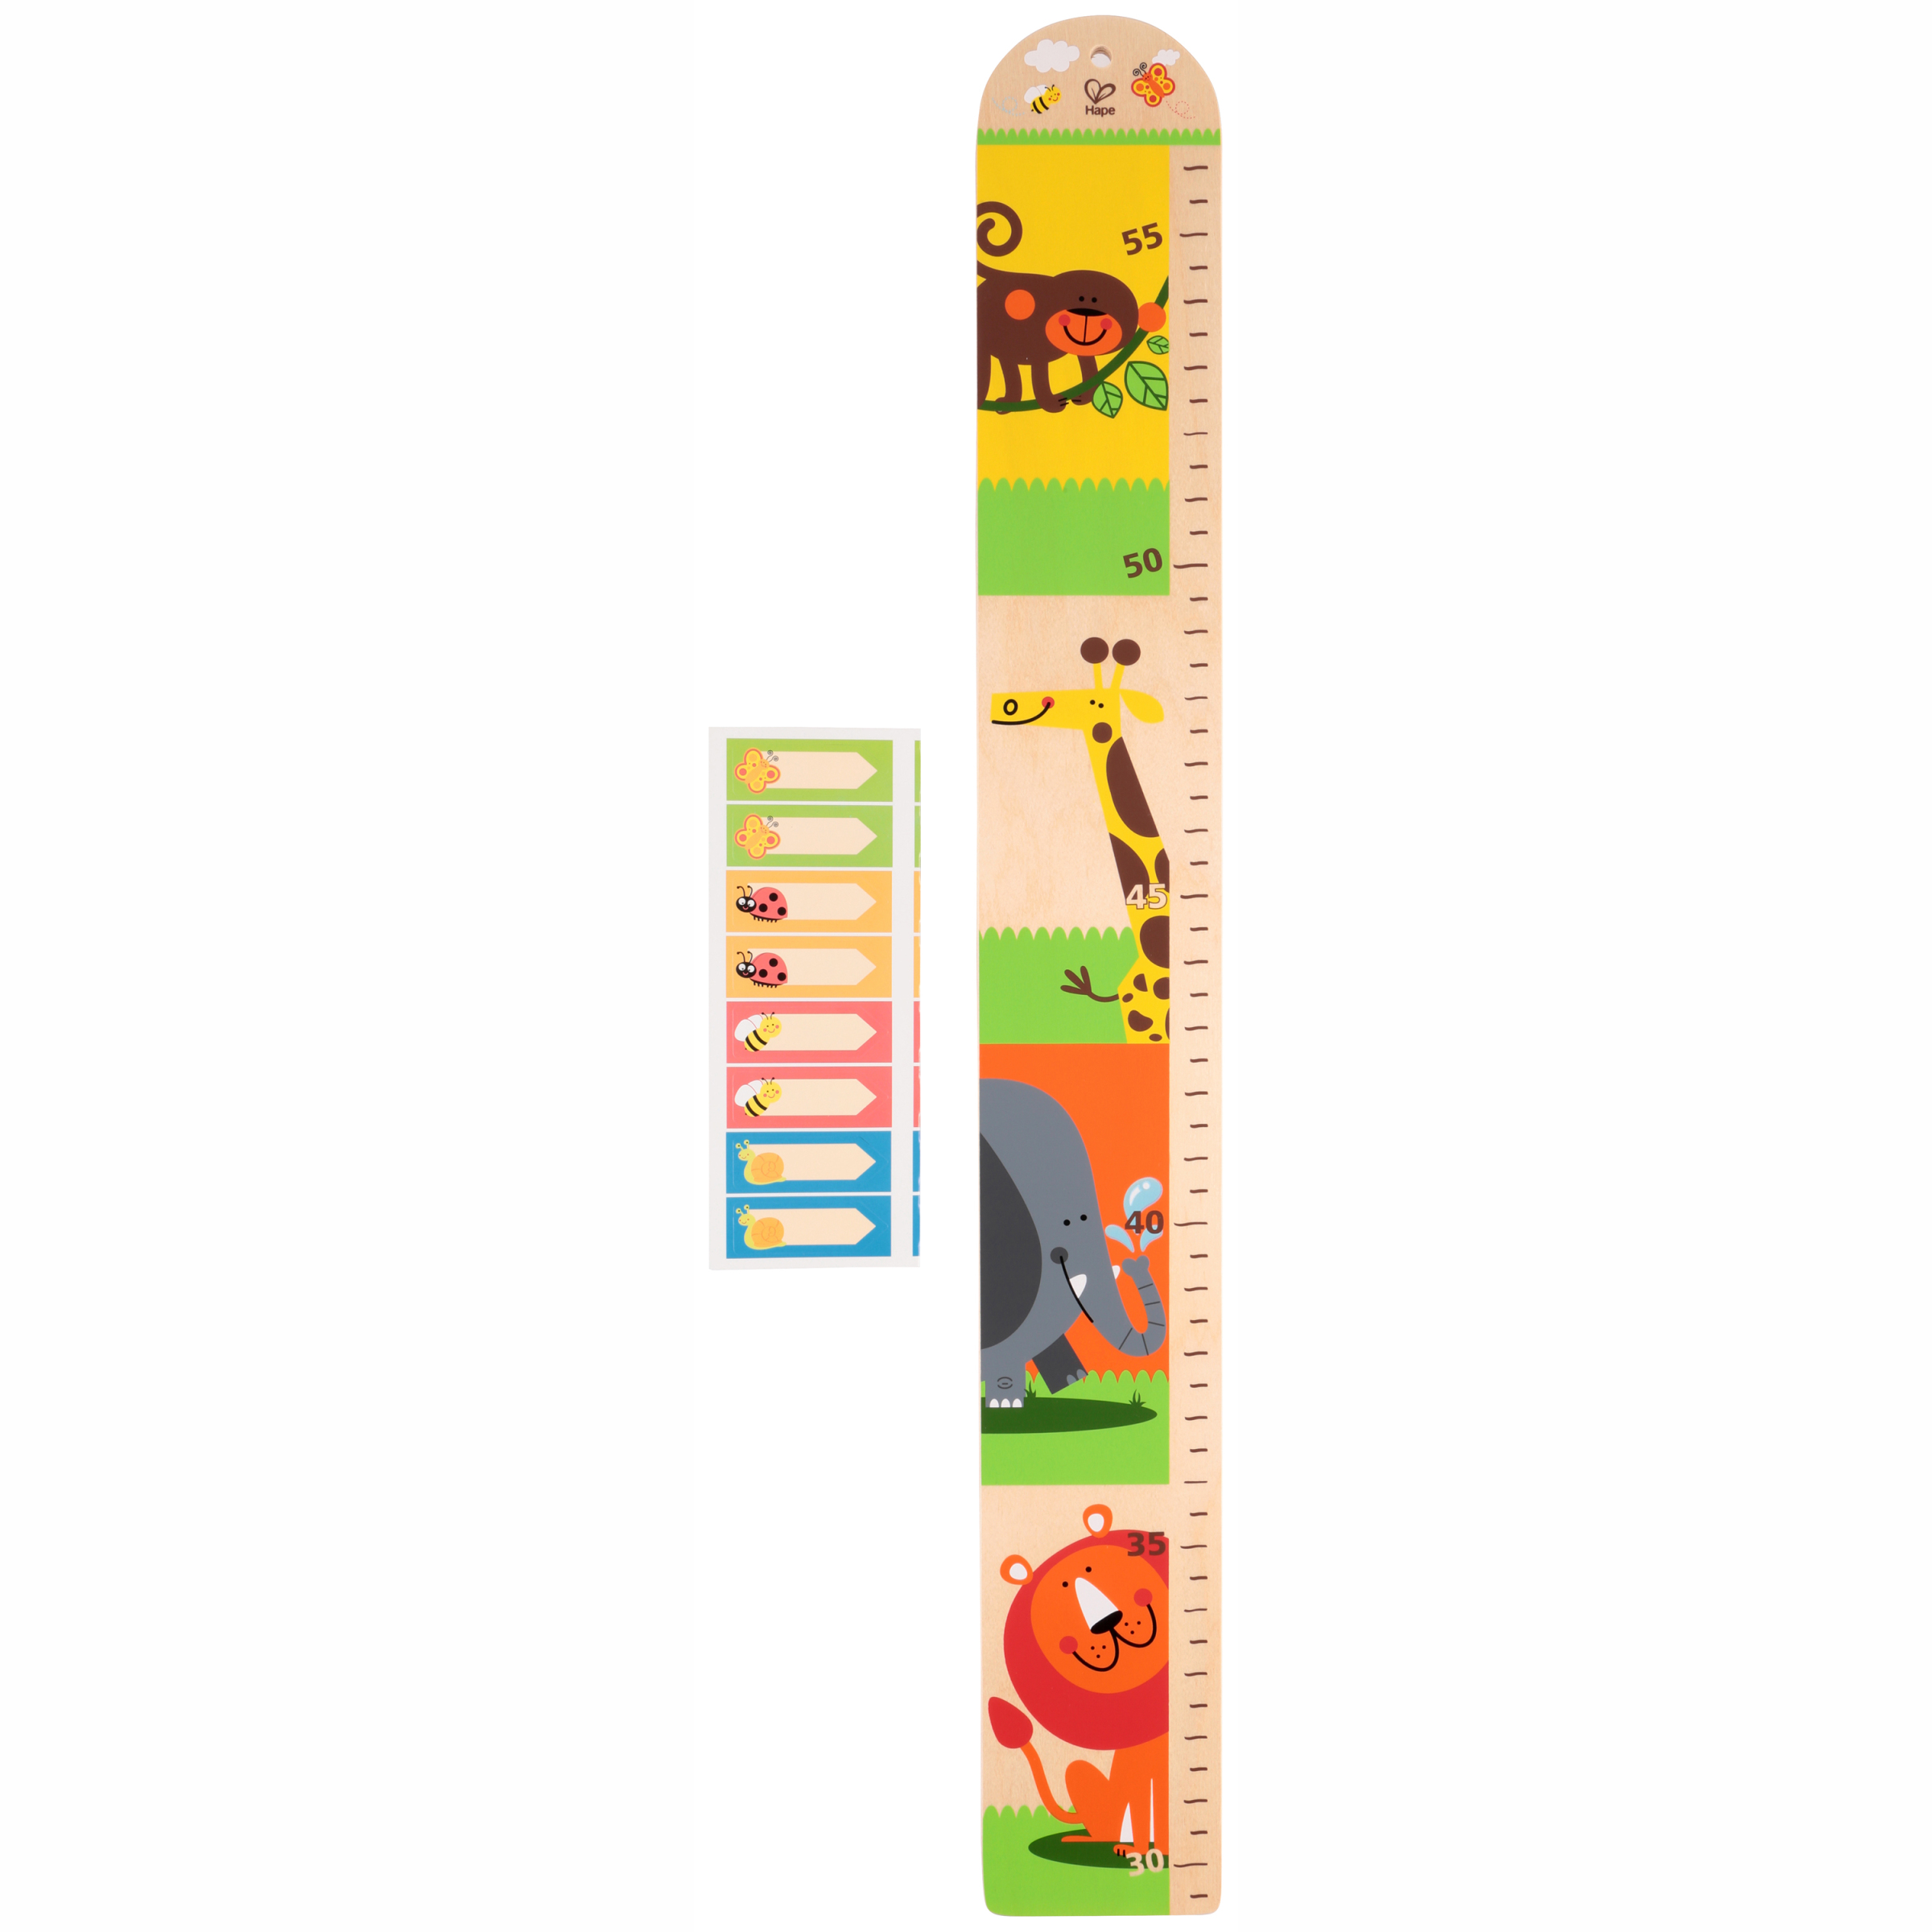 Hape watch me grow chart also walmart rh